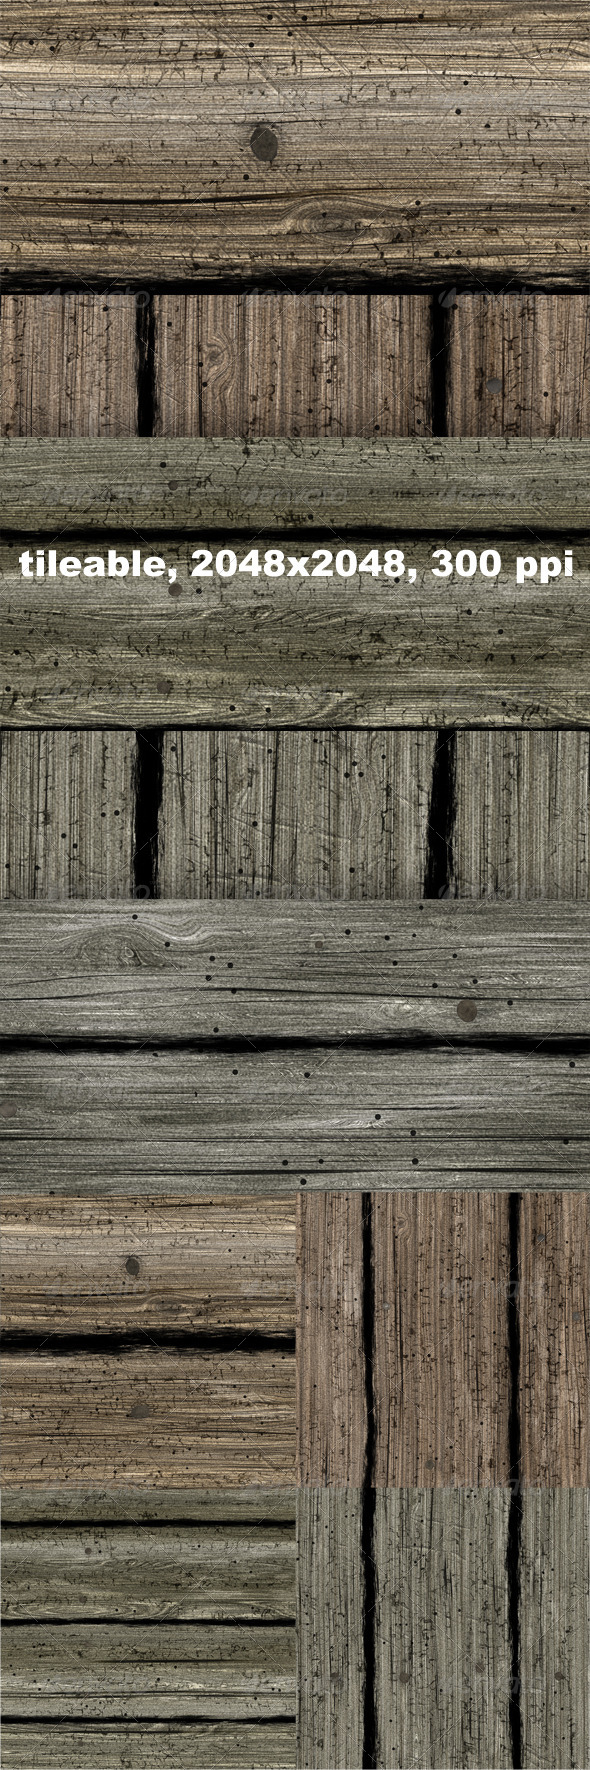 5 Old Planks - Wood Textures